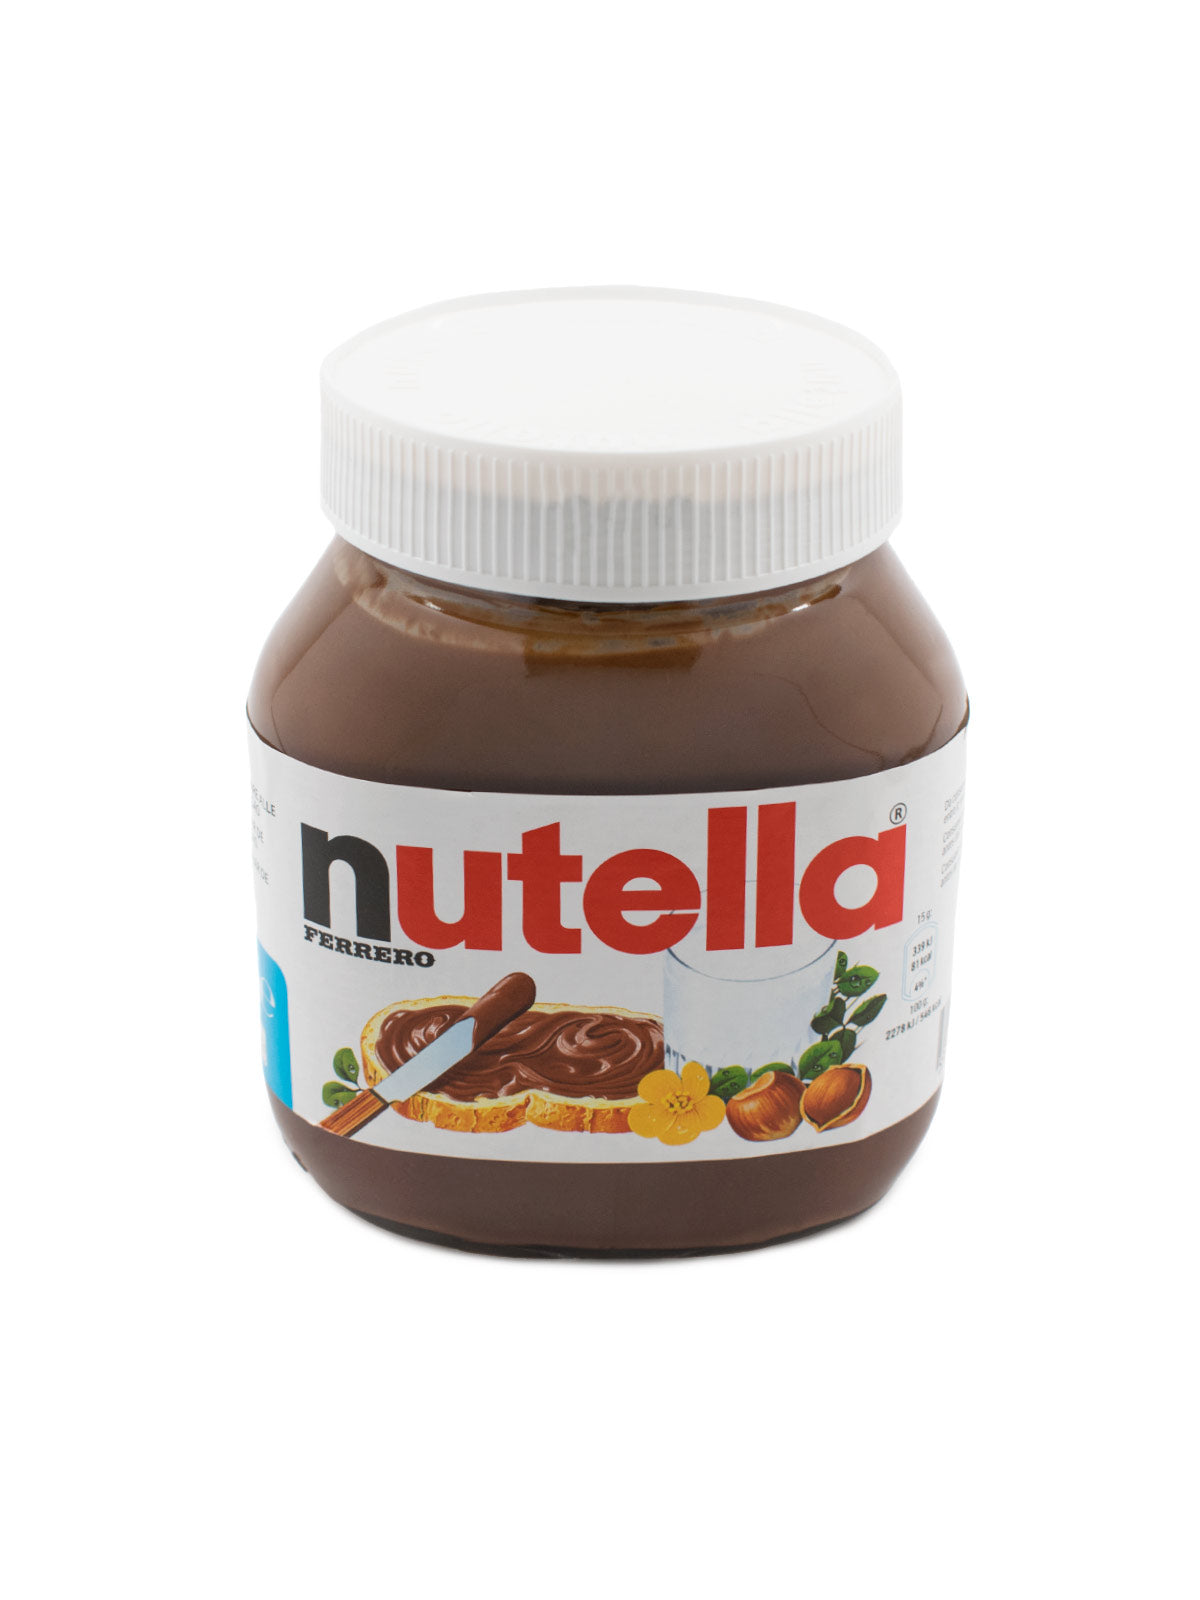 stm>Nutella 350gr, 13oz